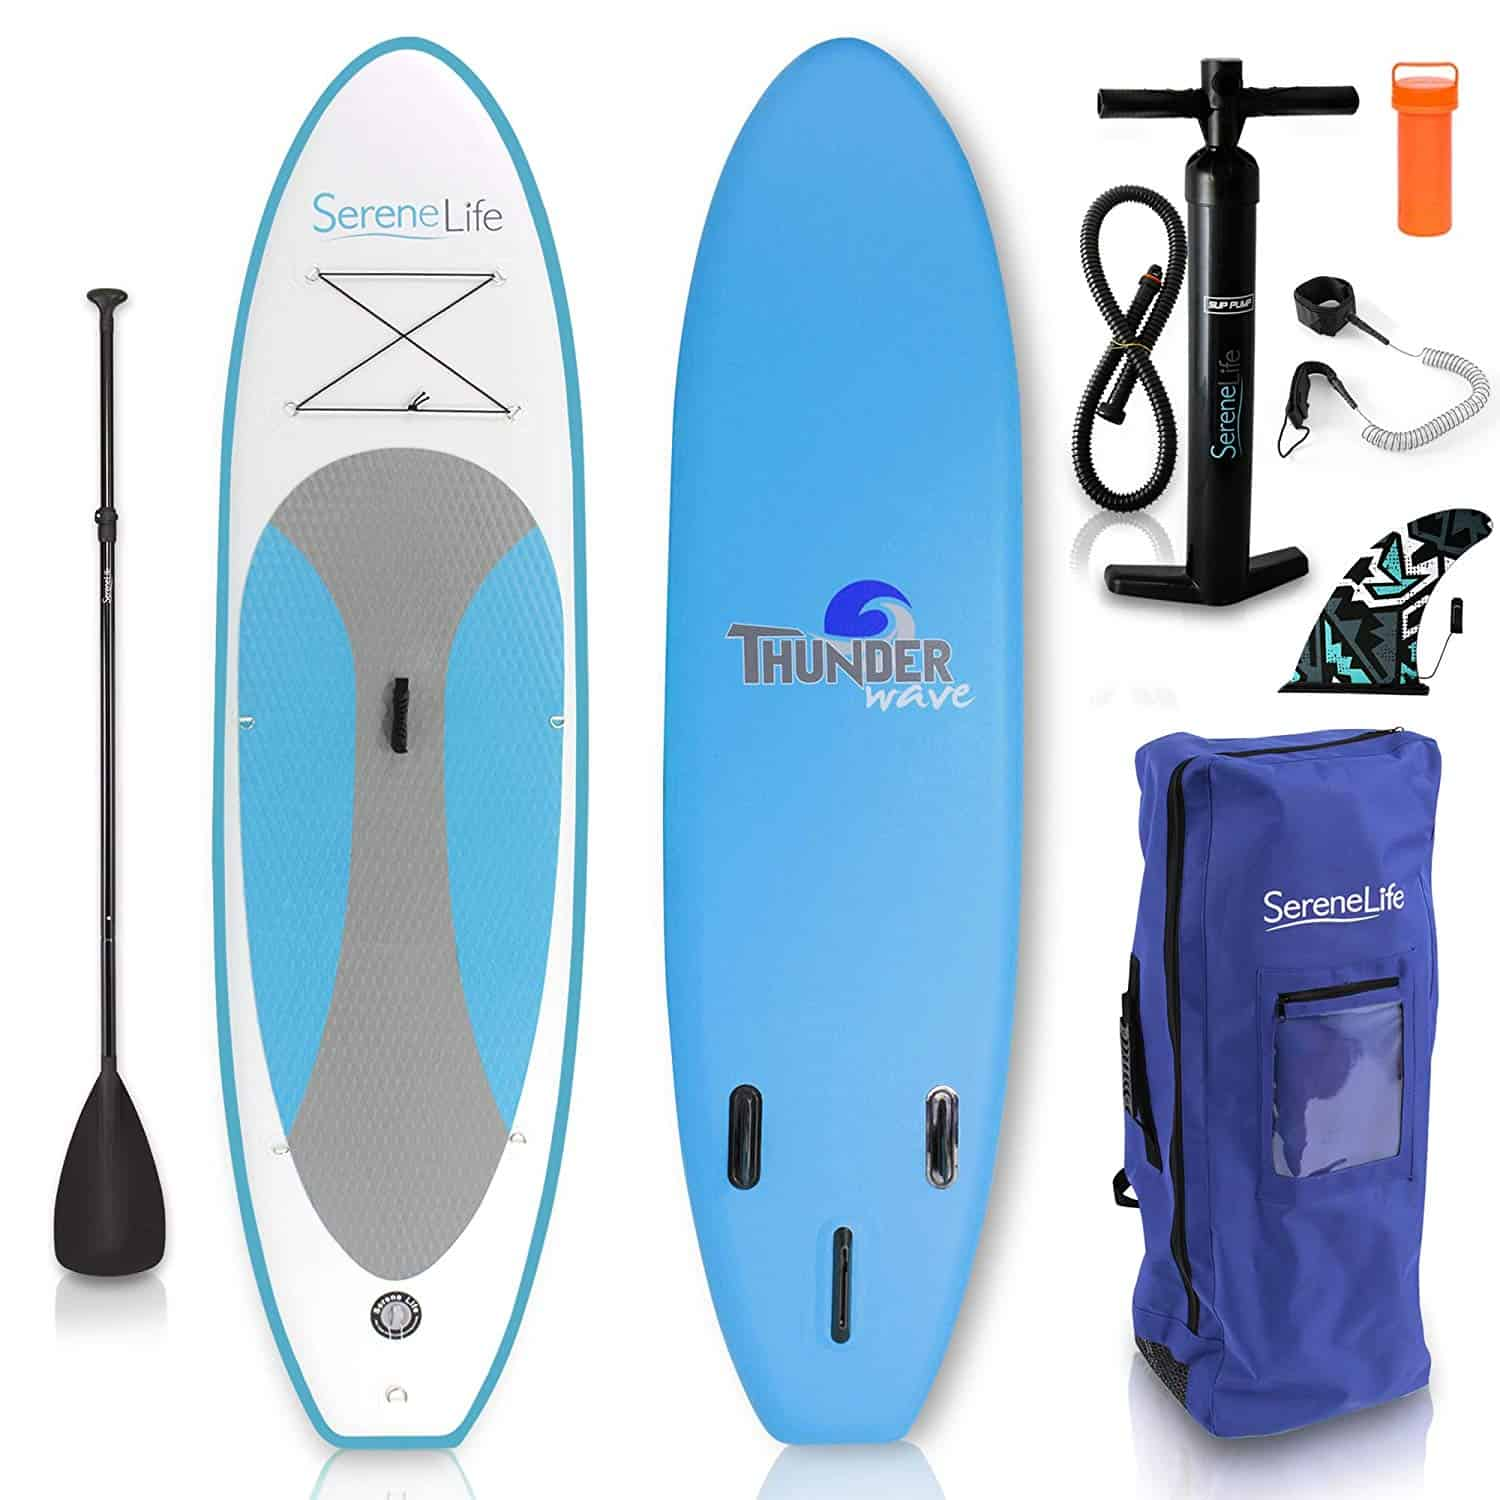 serenelife inflatble stand up paddle board